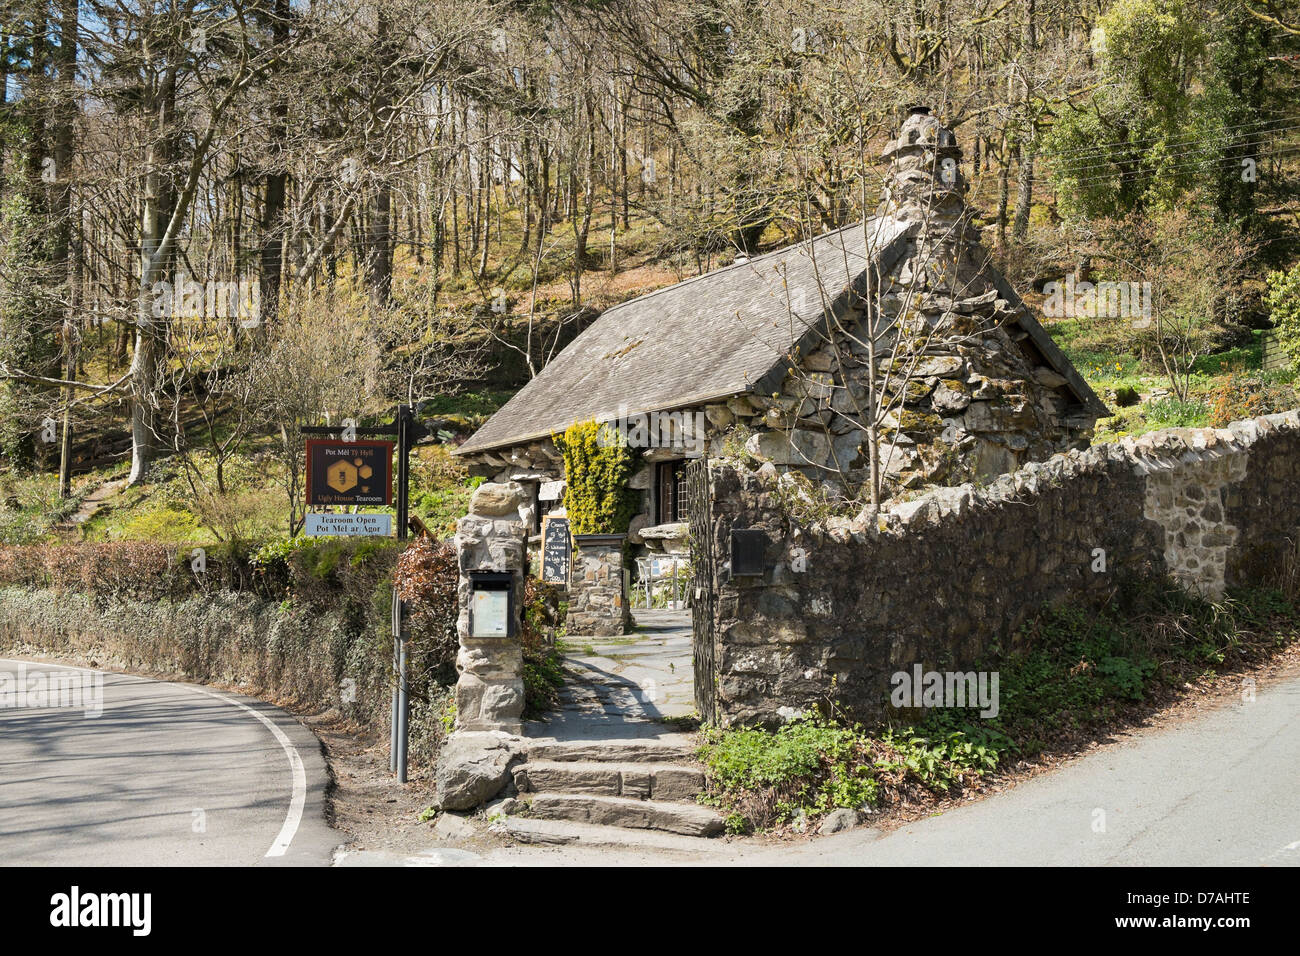 Ty Hyll or Ugly House Tearoom in old Welsh cottage in Snowdonia on A5 road between Capel Curig and Betws-y-Coed, - Stock Image